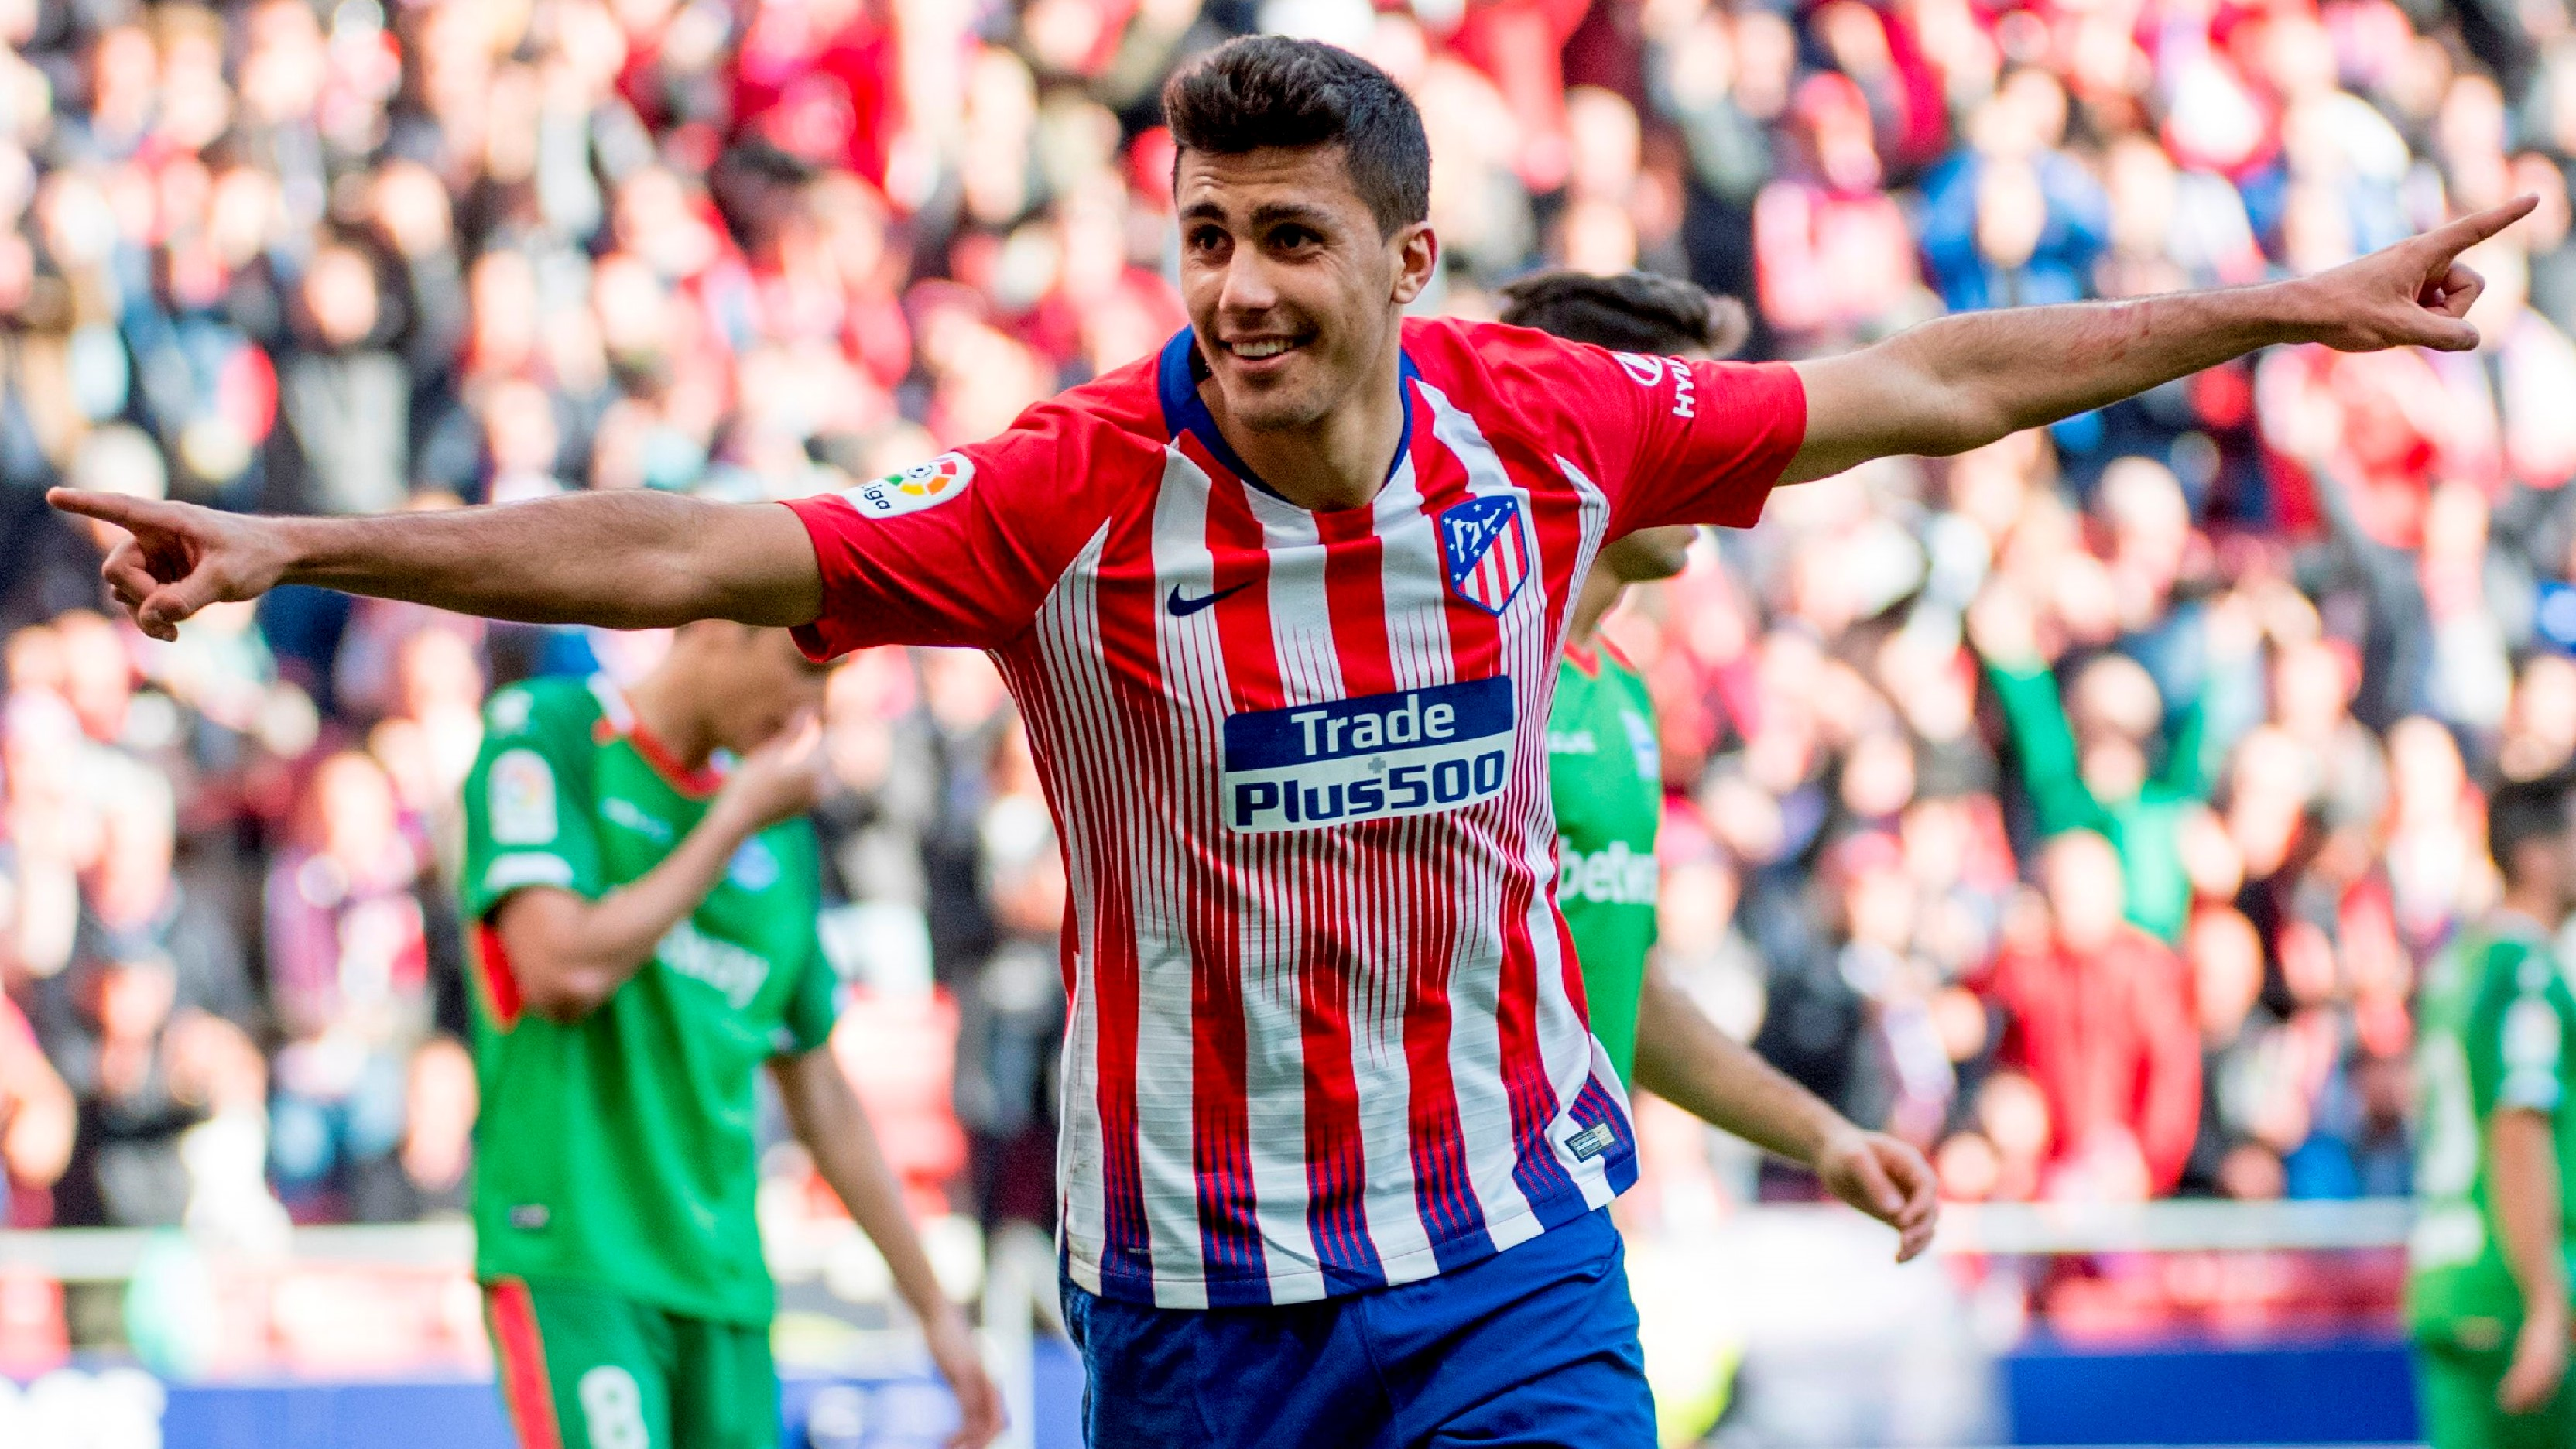 Rodri Atletico de Madrid Alaves LaLiga 08122018